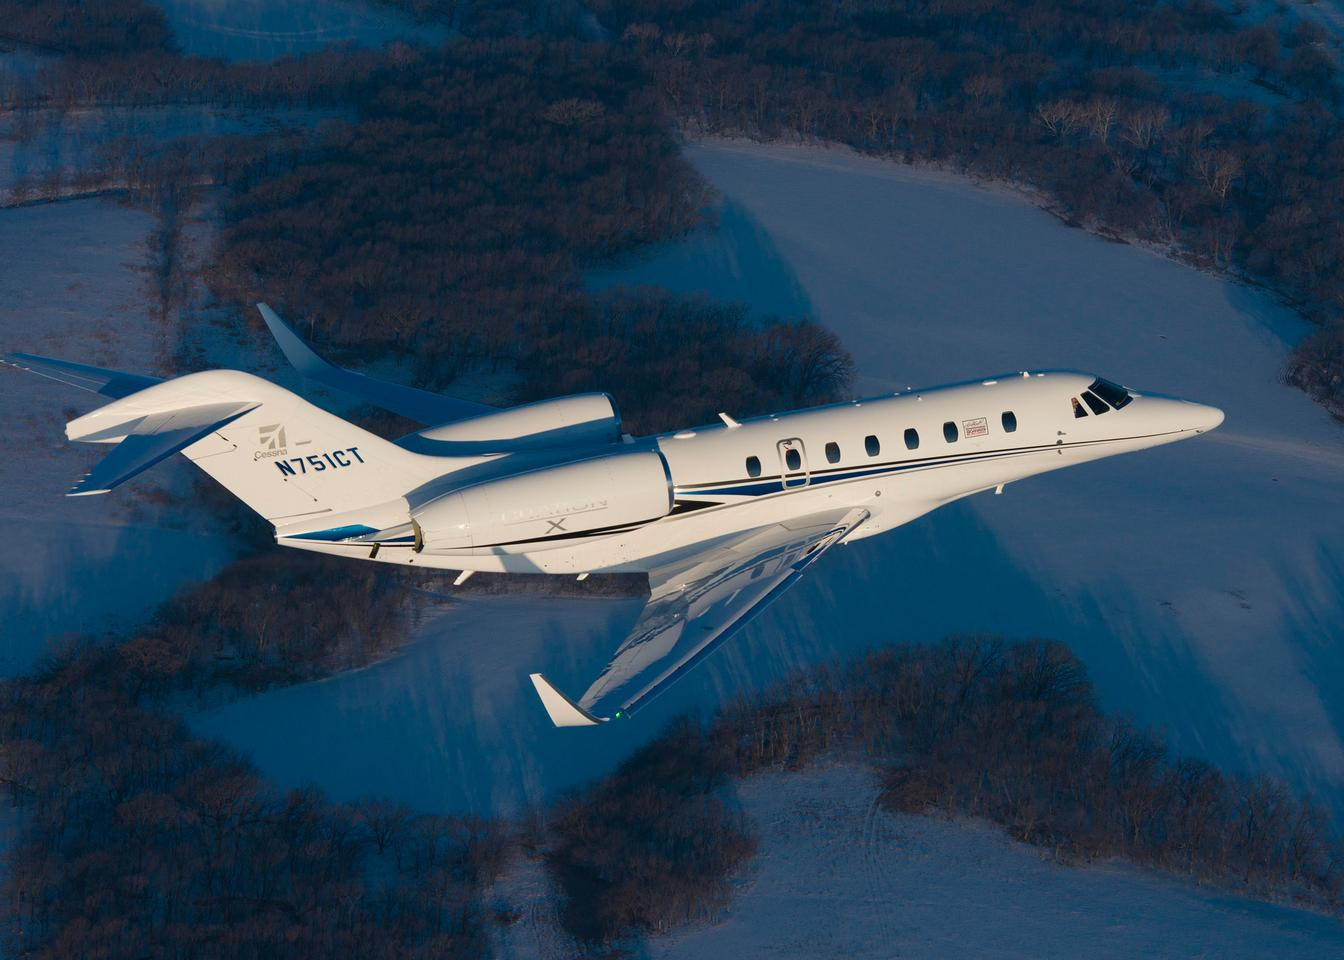 The Citation X is set to receive FAA certification in early 2014